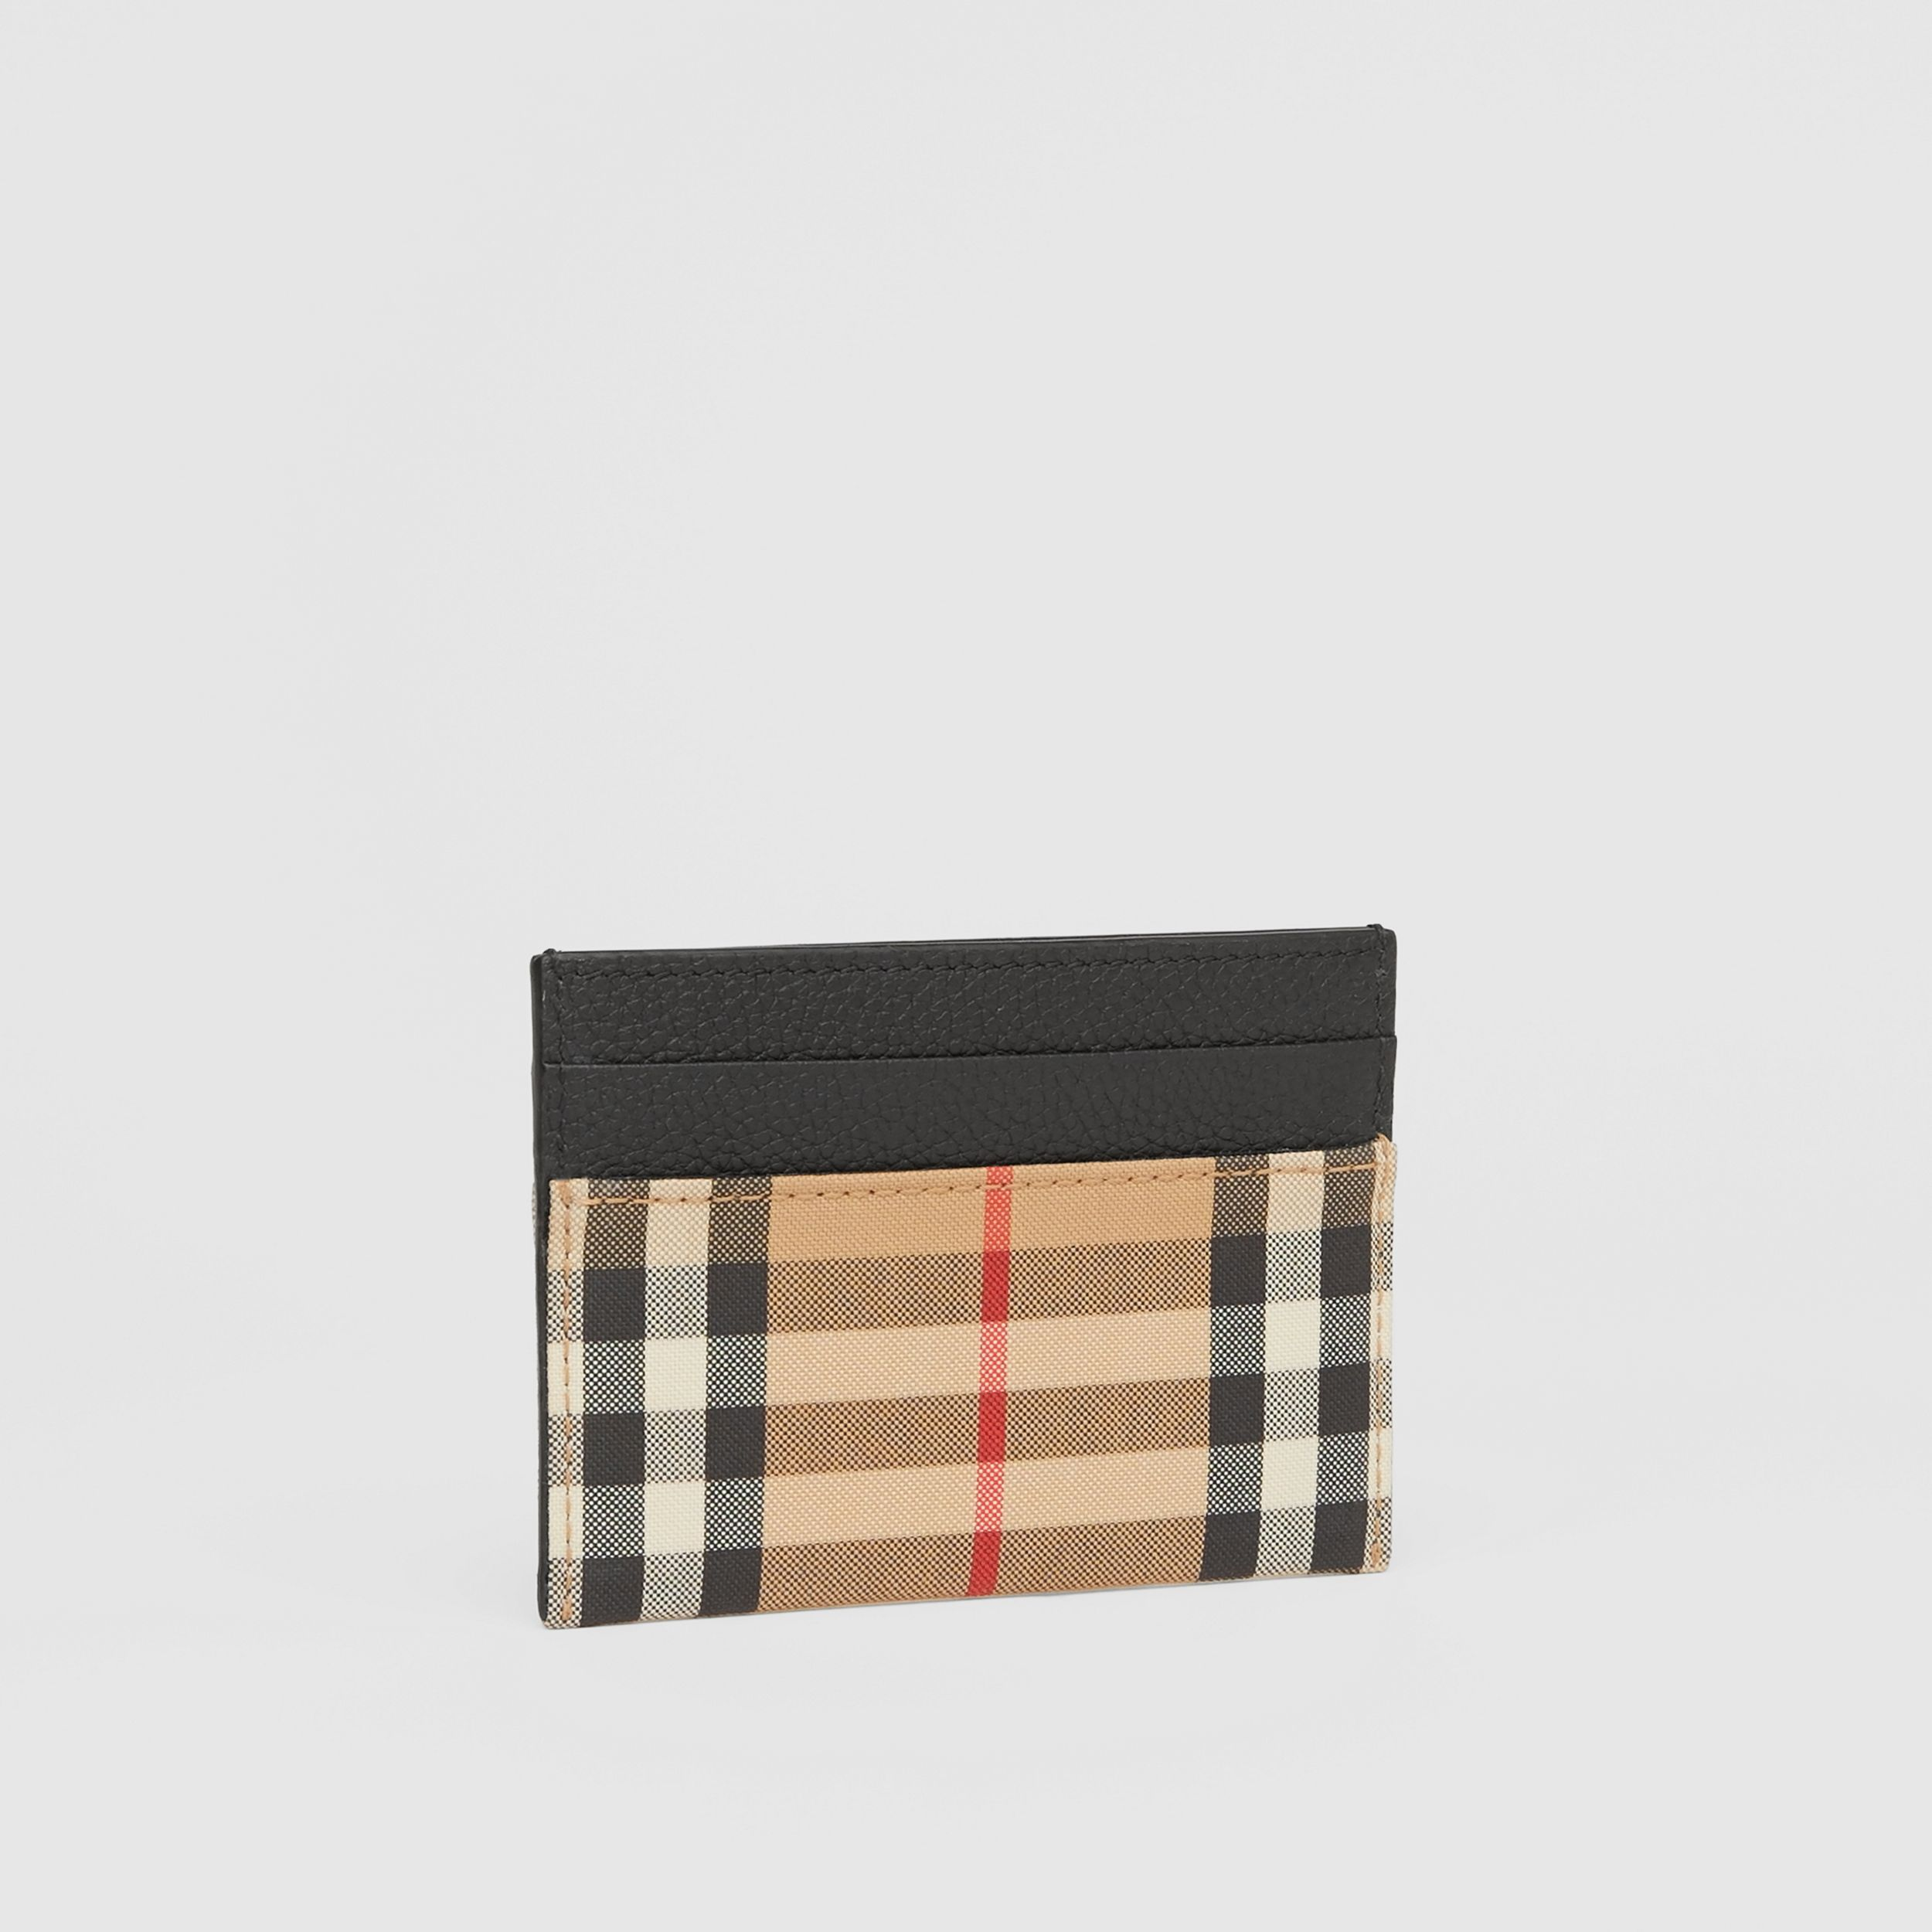 Vintage Check and Leather Card Case in Black - Women | Burberry - 4